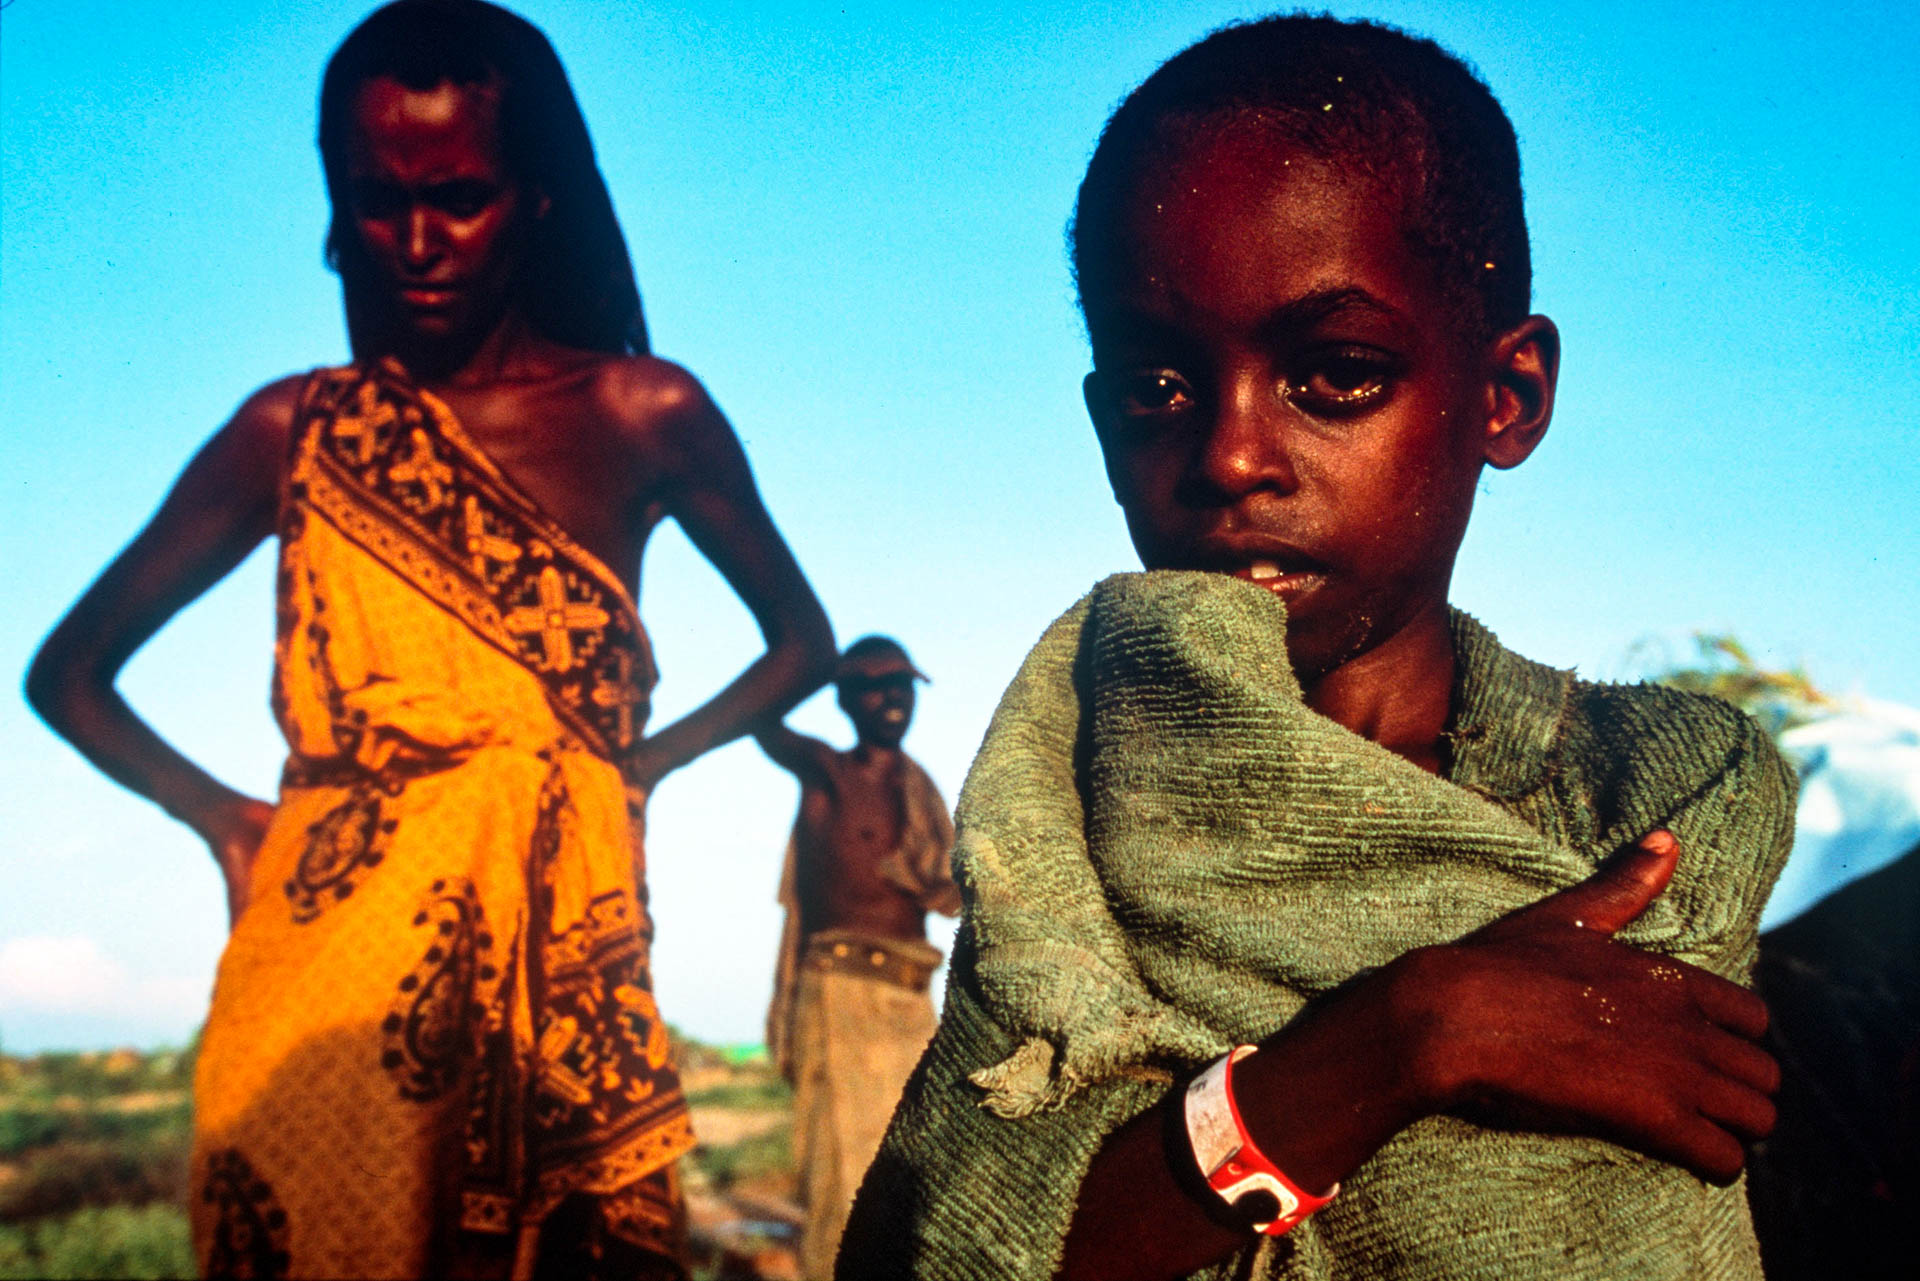 Bardera, Somalia - December 1992 The intense glance of a child who is longing for some food.